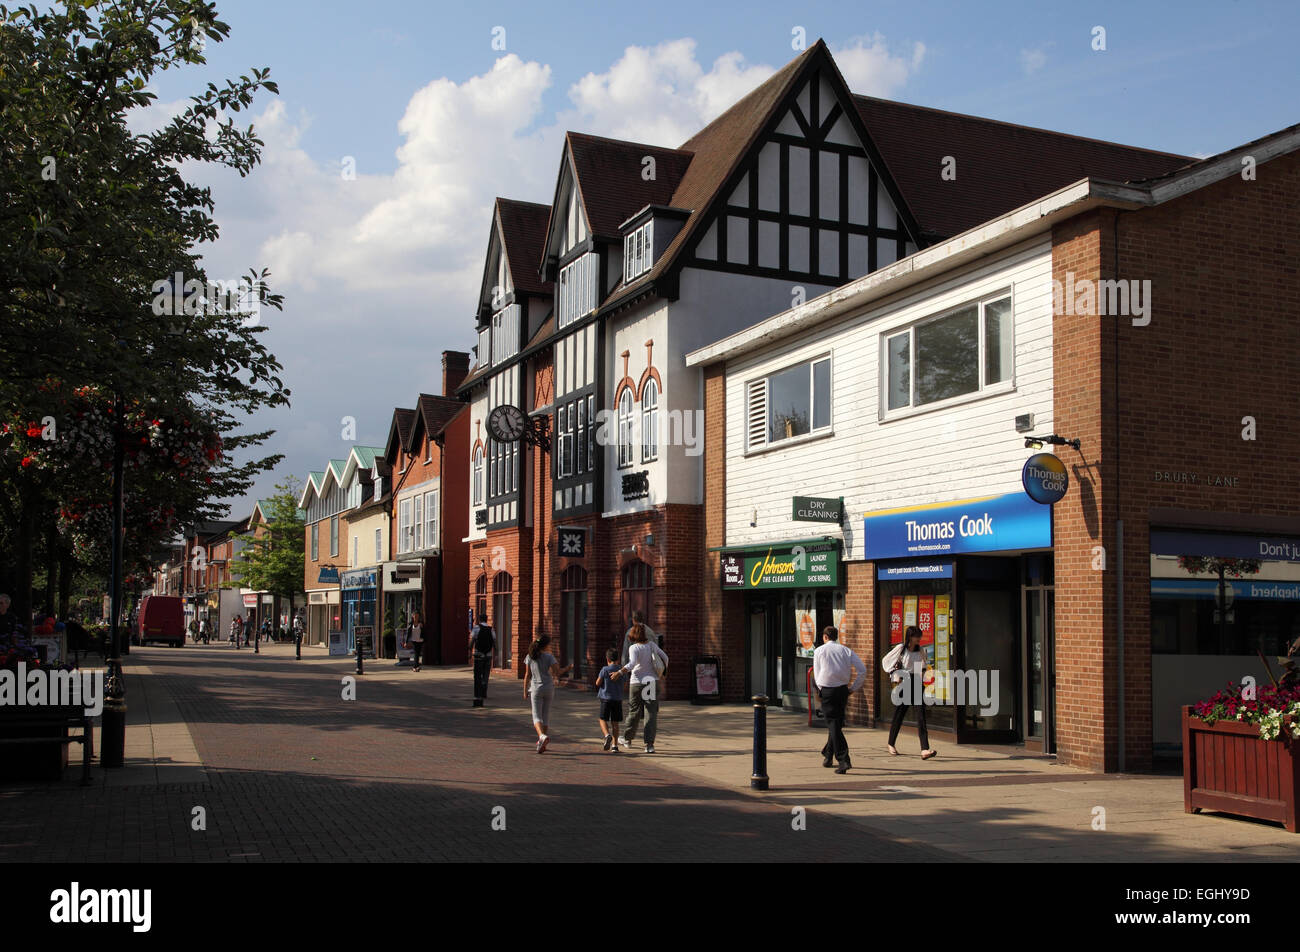 View along Solihull High Street, shops and retail area - Stock Image